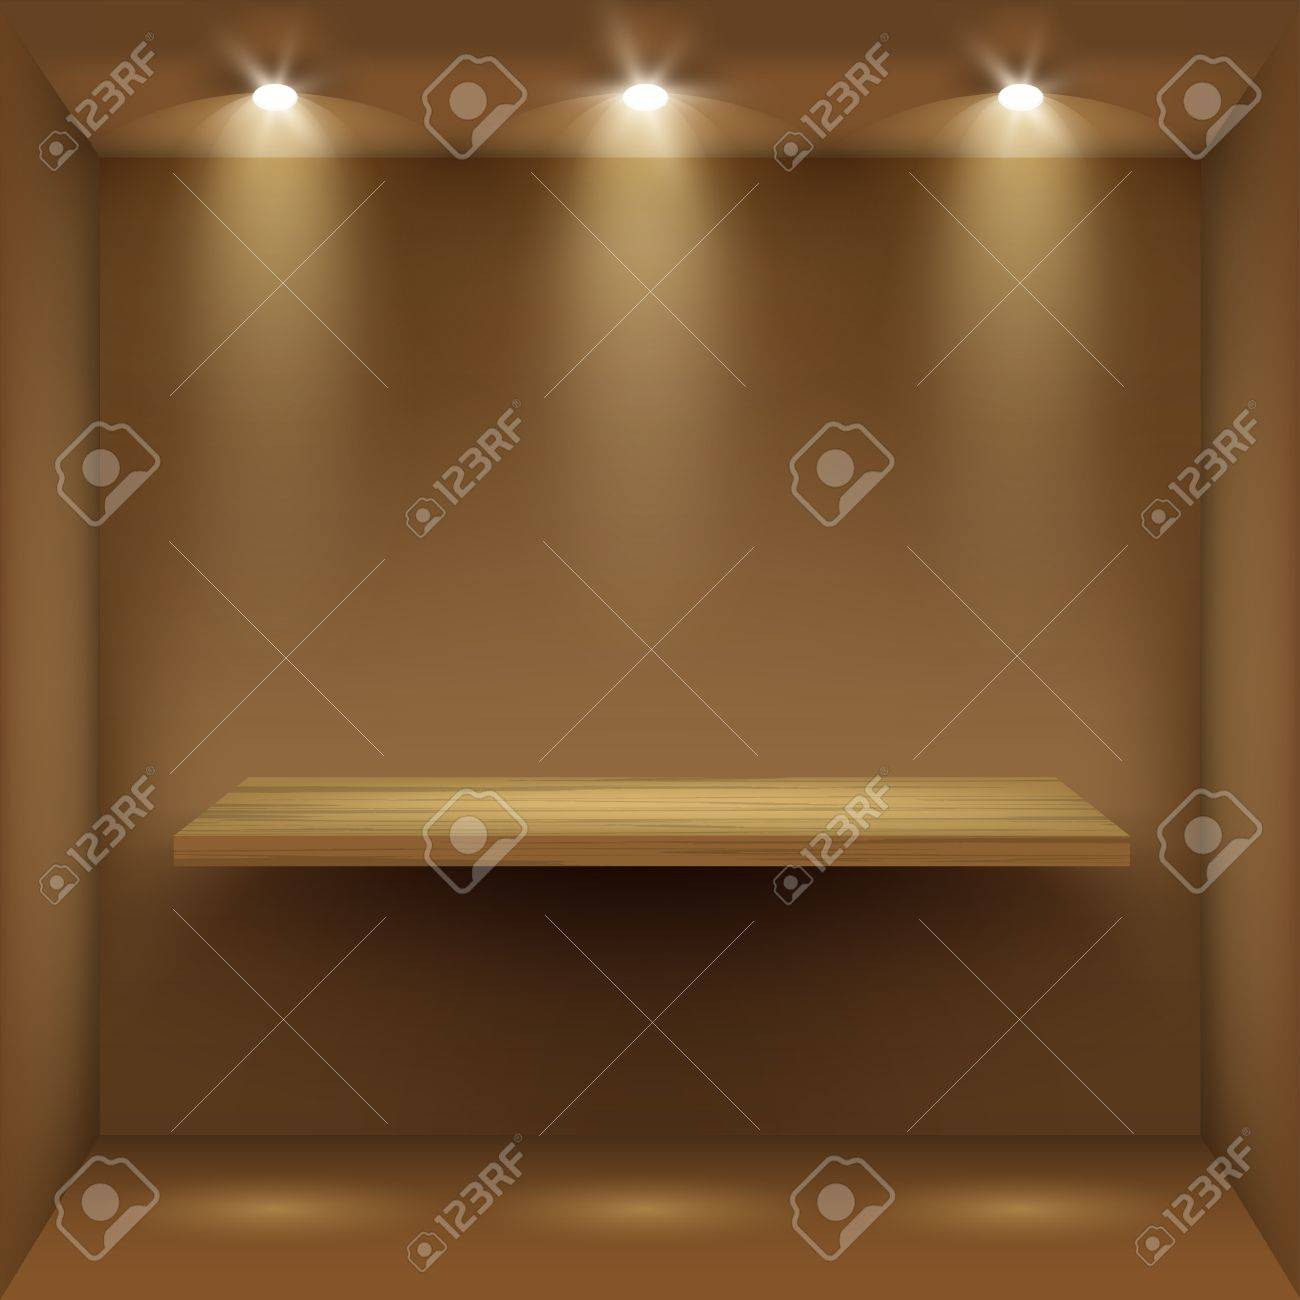 Interior wooden shelves free vector - Empty Wooden Shelf In Room Illuminated By Searchlights Part Of Set Vector Interior Stock Vector